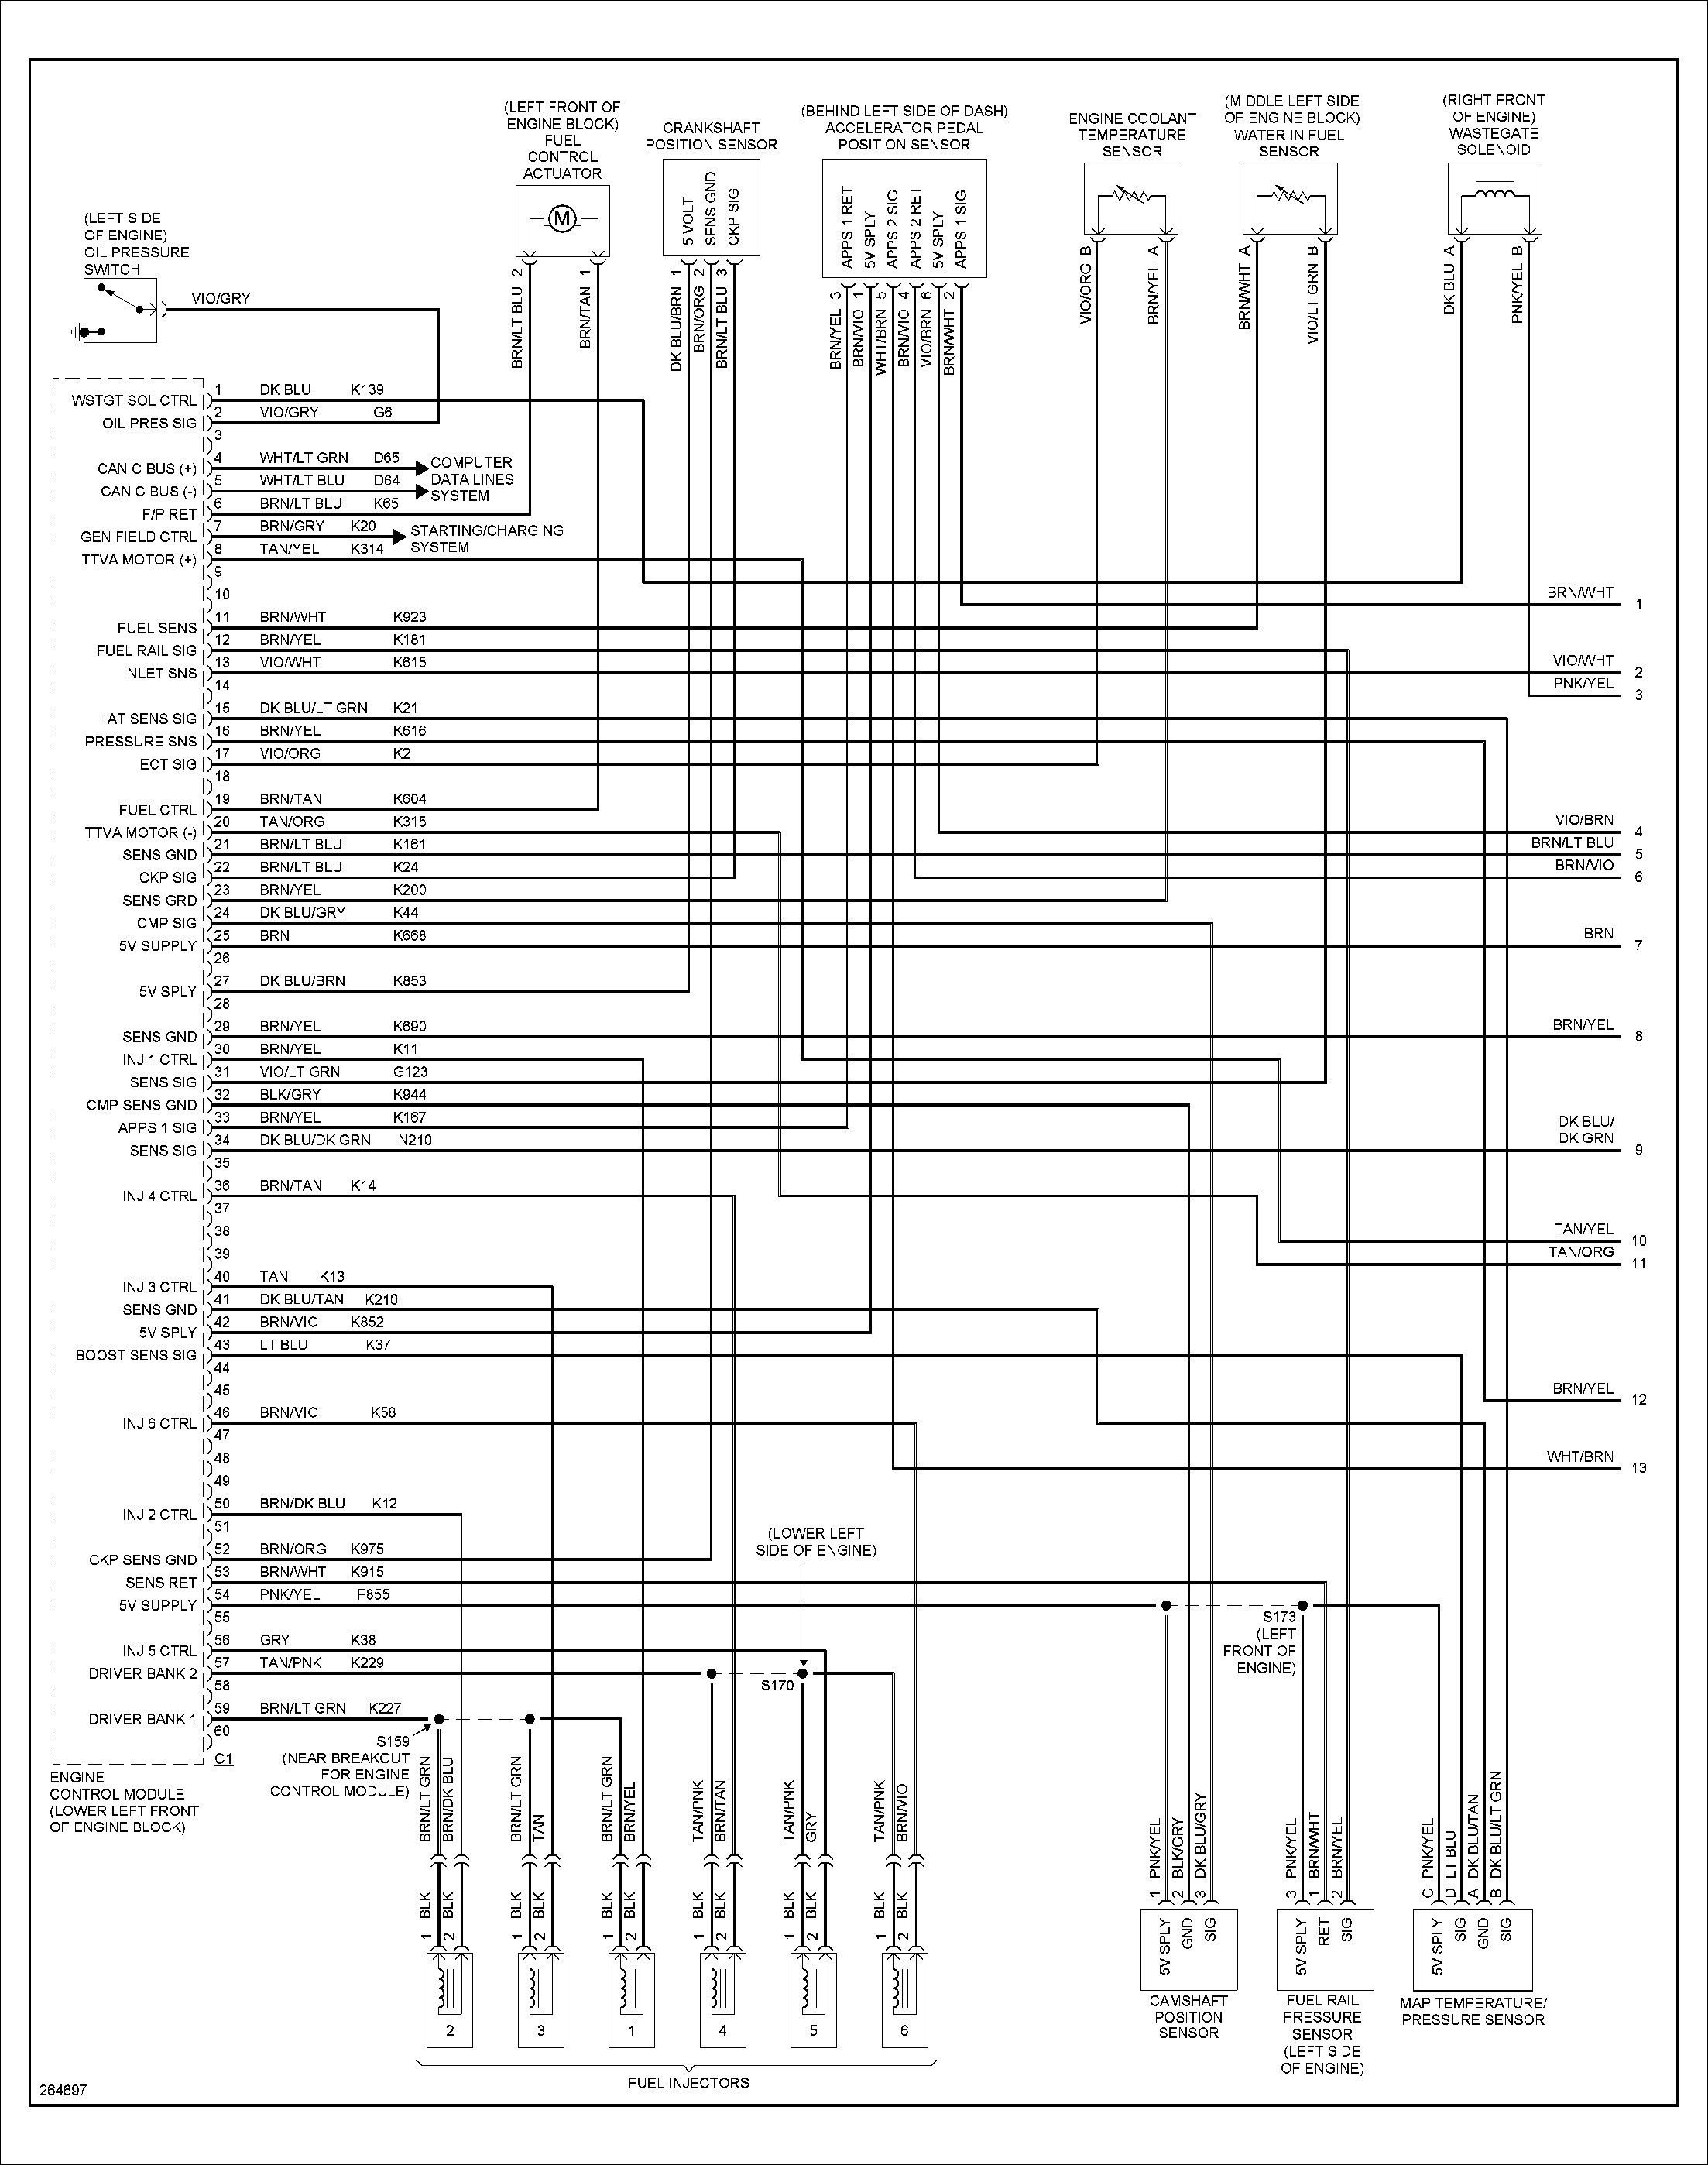 1995 Dodge Ram Pcm Wiring Diagram 36v Club Car Wiring Diagram Schematic Wiring Diagram Schematics